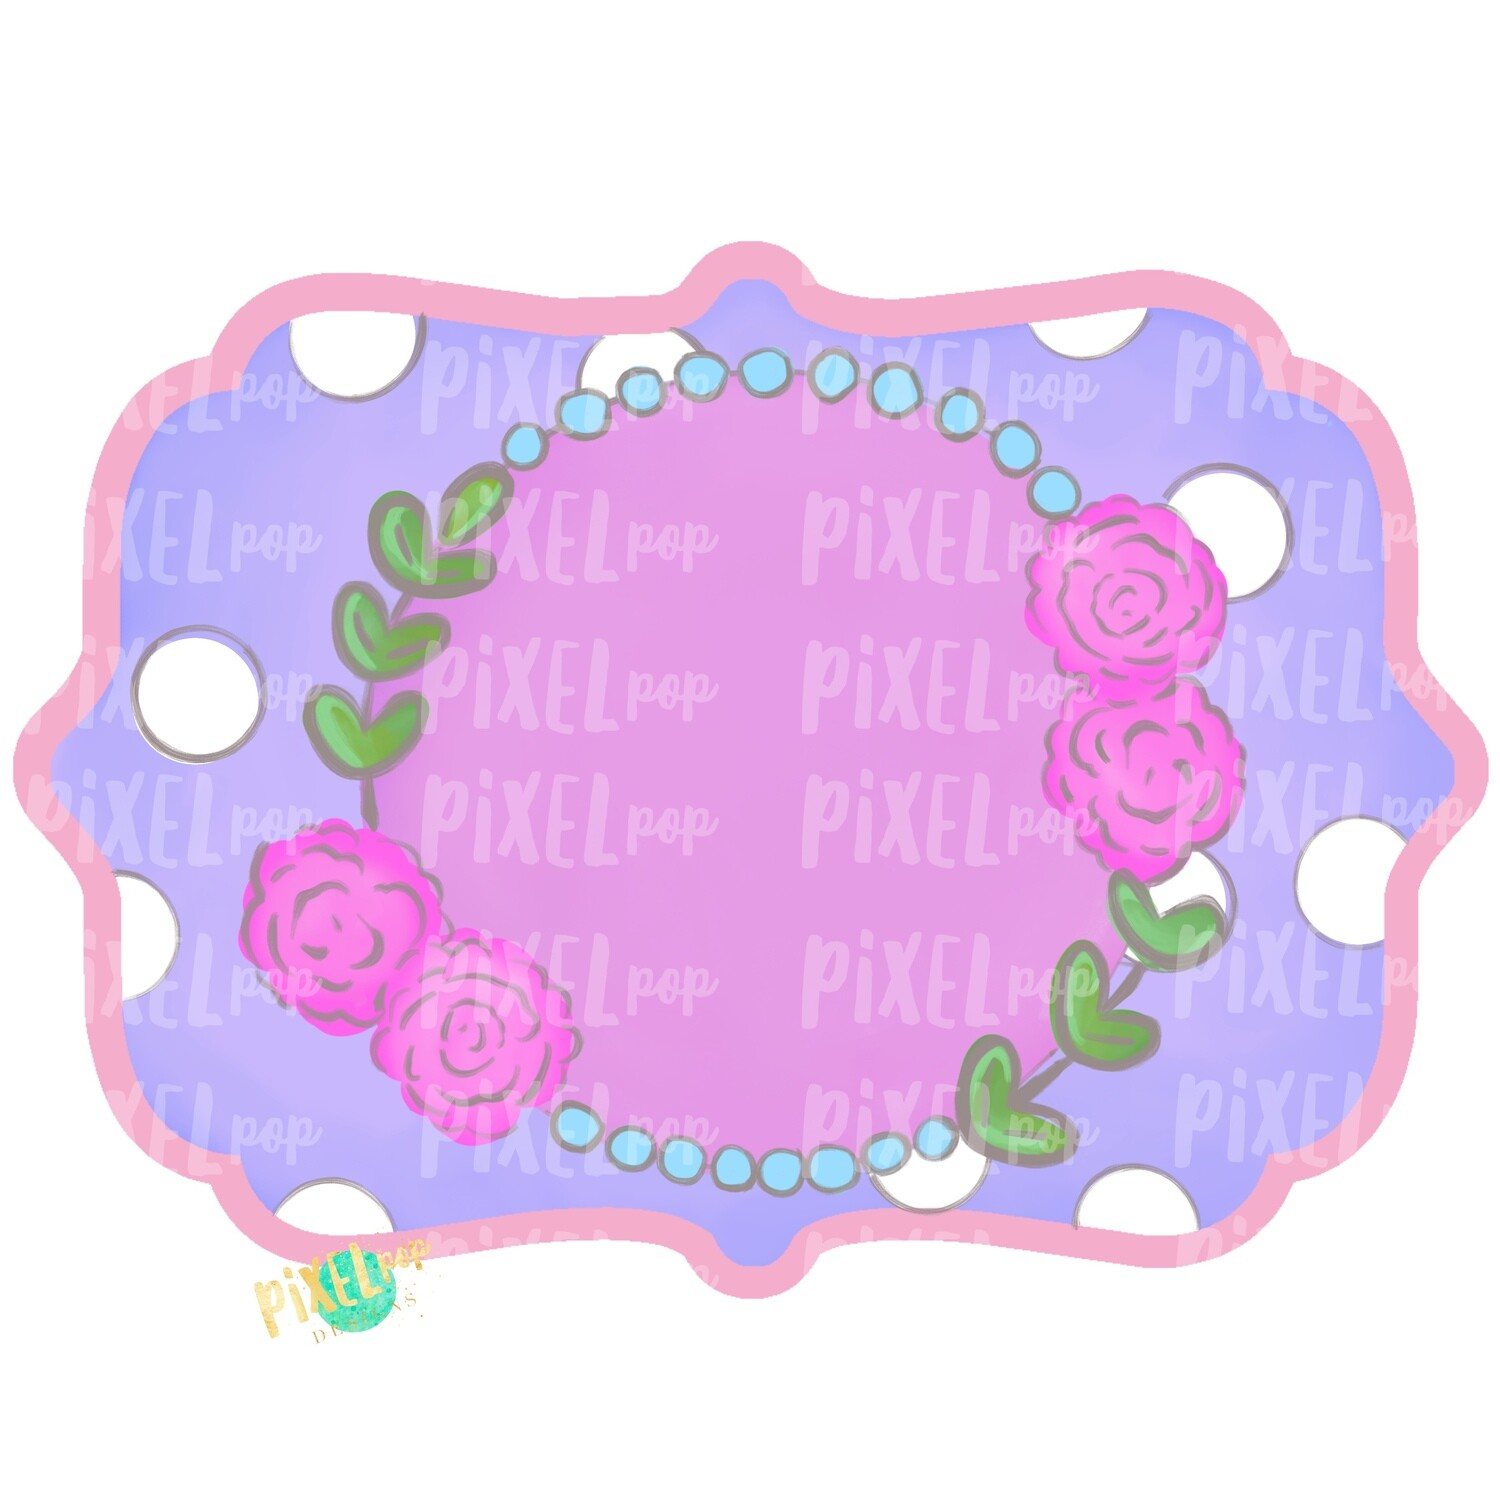 Chic Frame with Flowers Purple and Pink PNG | Hand Painted Ornament Design | Sublimation PNG | Digital Download | Printable Artwork | Art